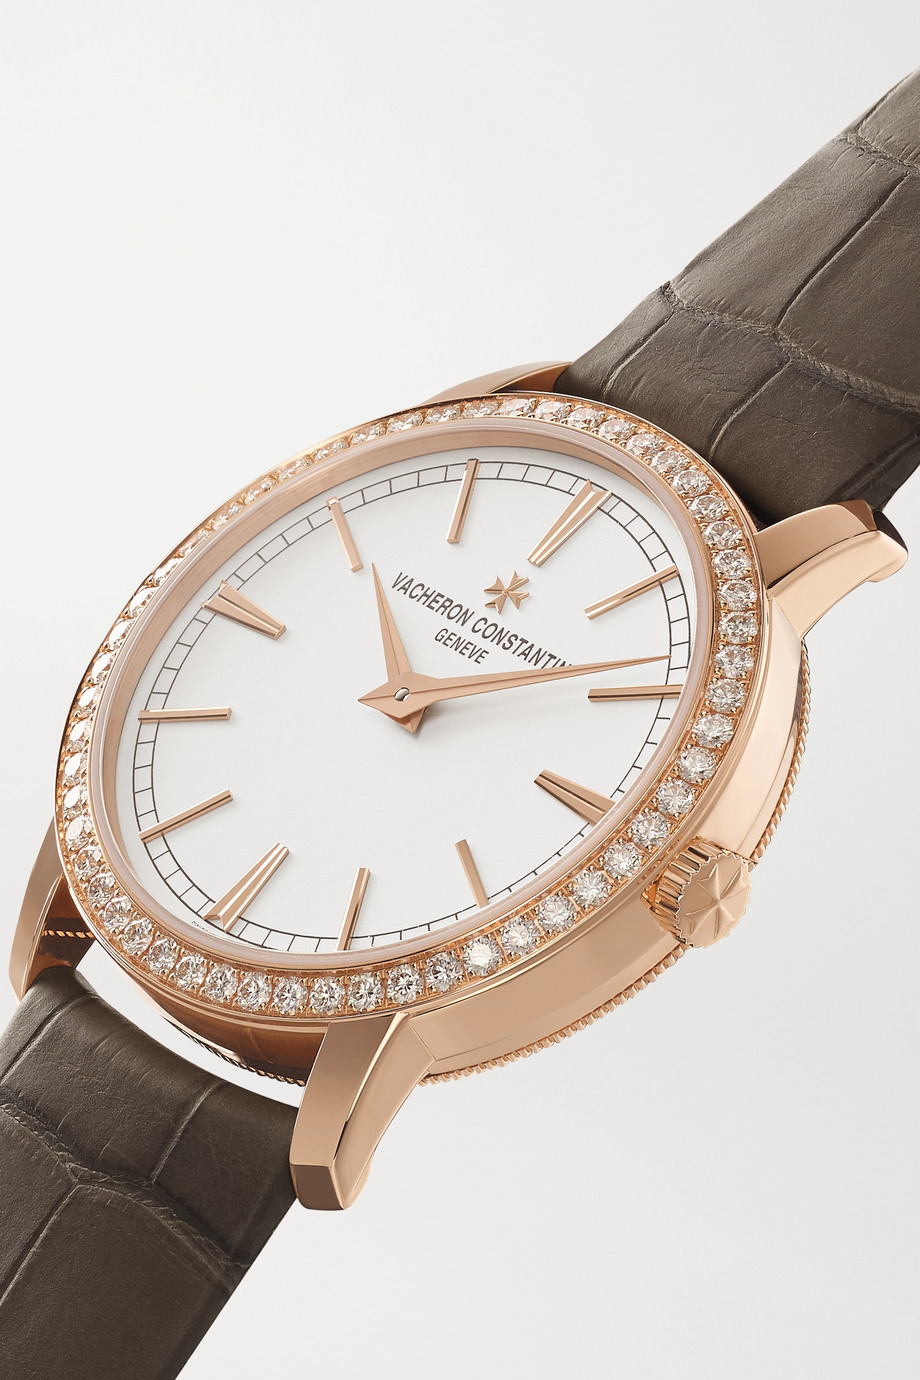 Vacheron Constantin Montre à remontage manuel en or rose 18 carats et diamants à bracelet en alligator Traditionnelle, 33 mm